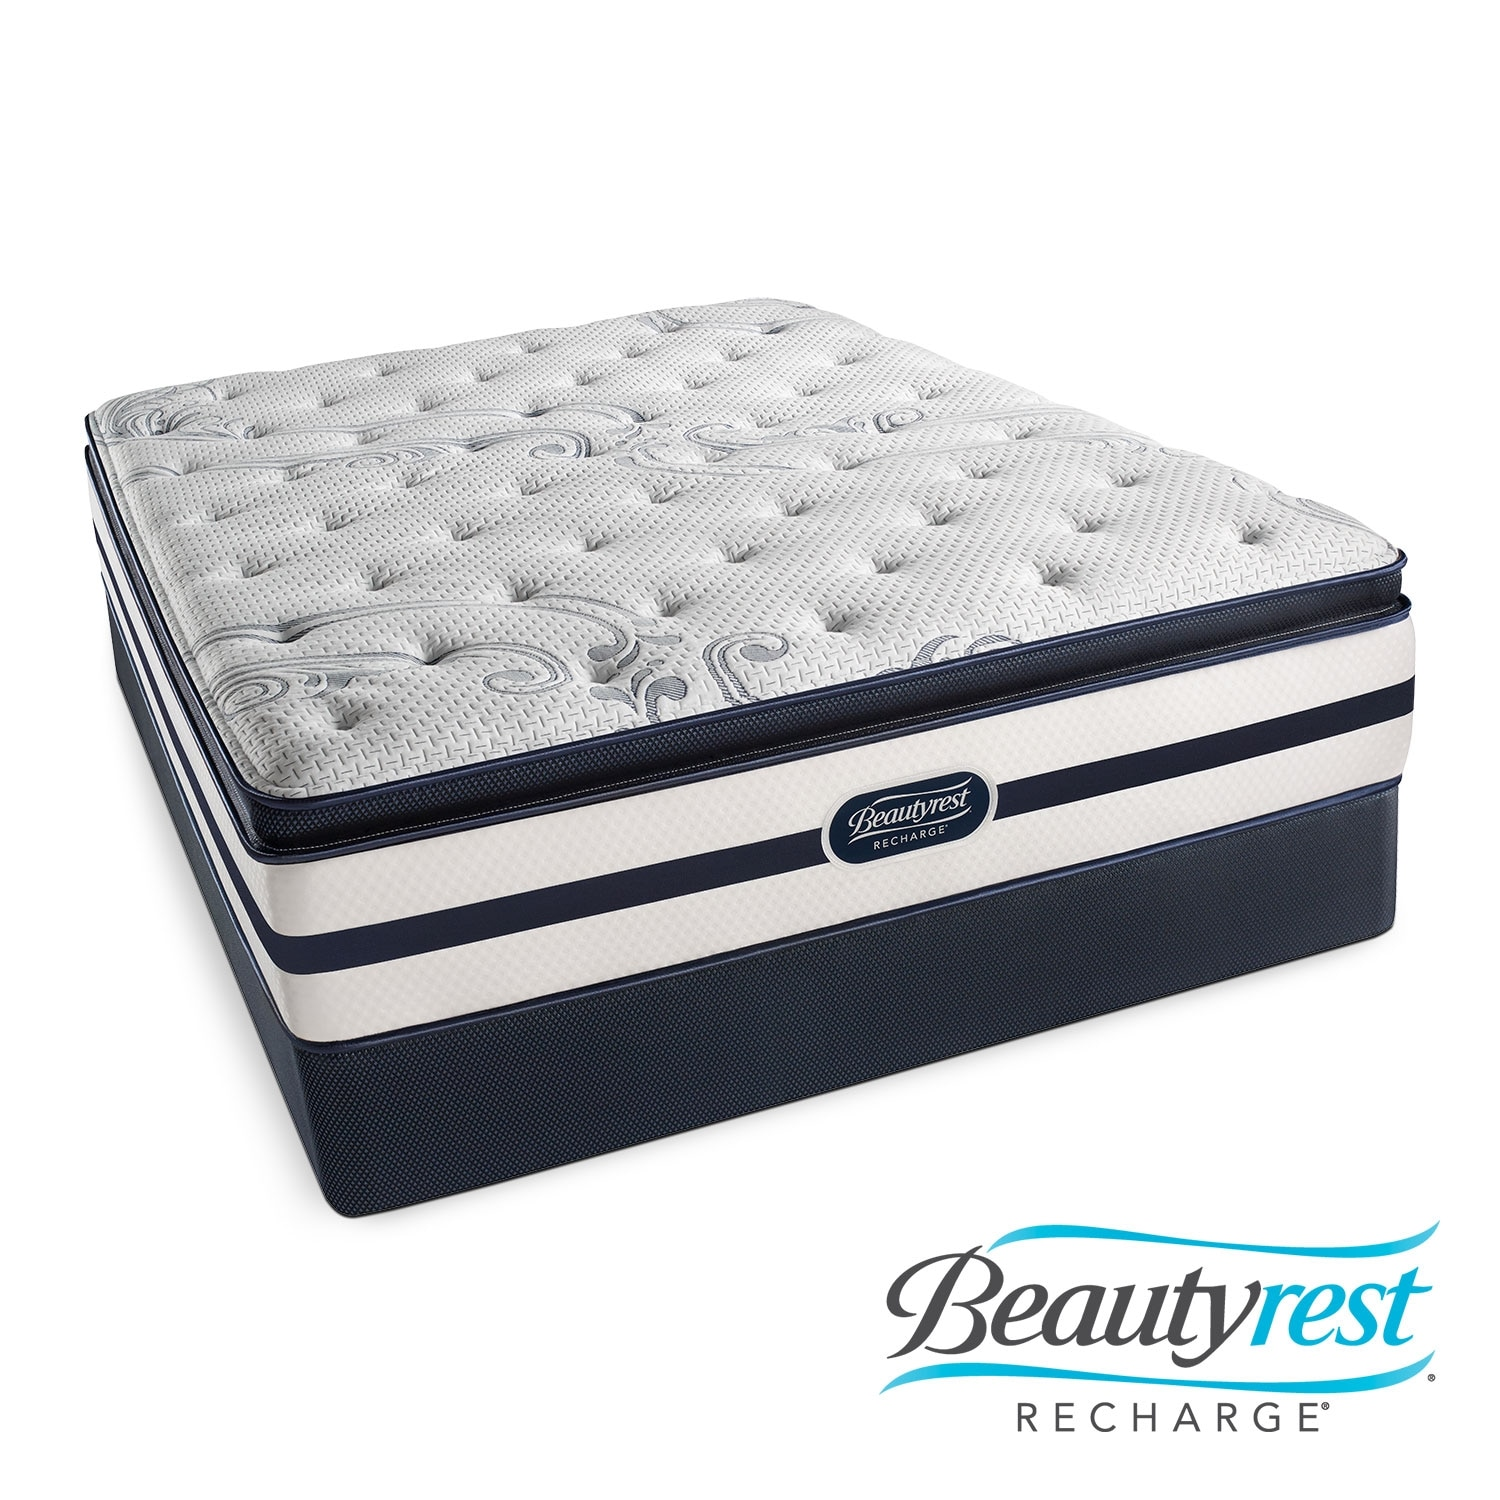 Mattresses and Bedding - Alisa Plush PT Queen Mattress/Low Profile Foundation Set